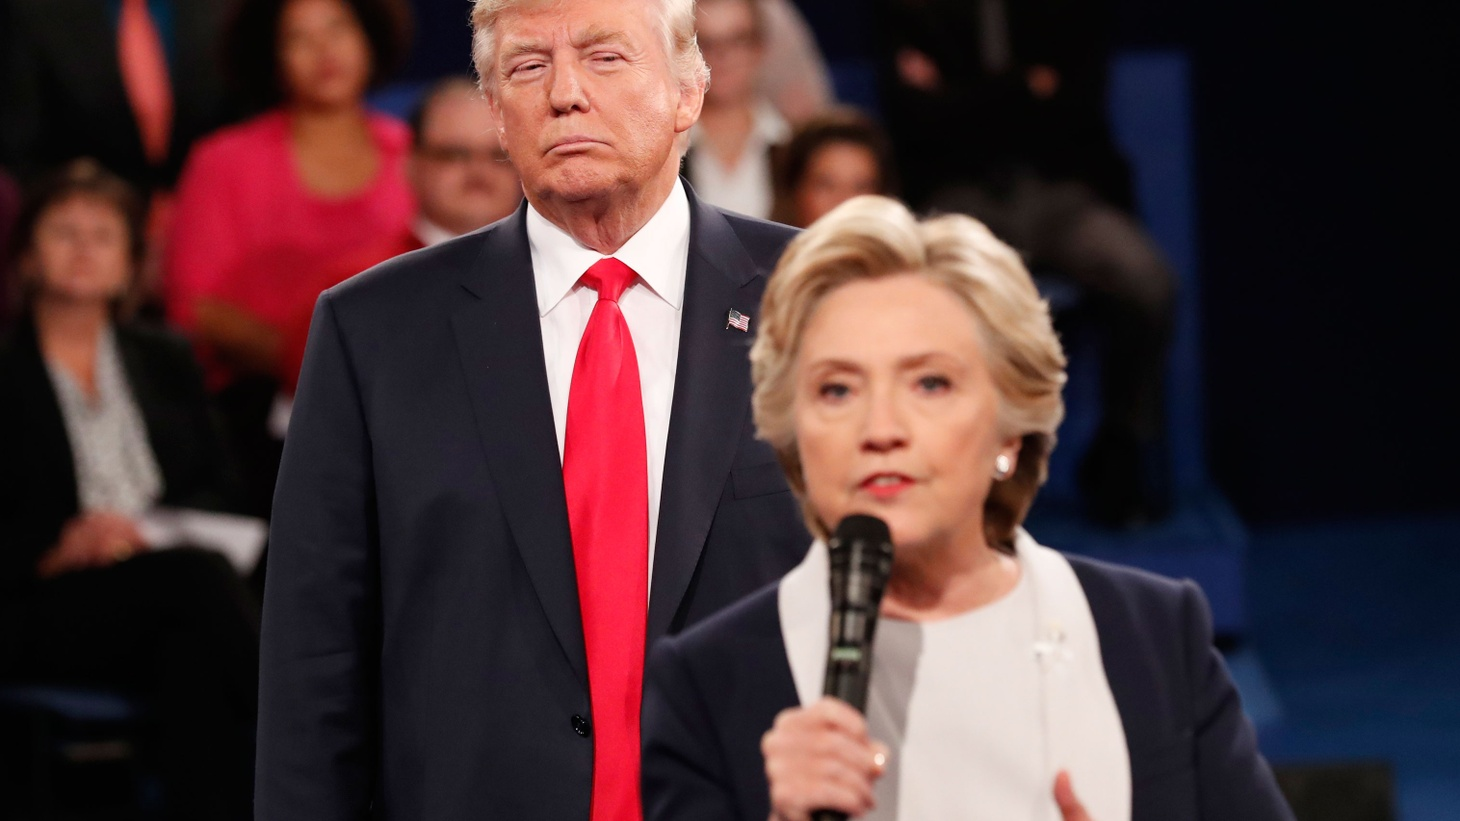 America's founding fathers accused each other of crimes, hypocrisy and sexual misbehavior, but times had changed — until last night at this year's second presidential debate in St. Louis.